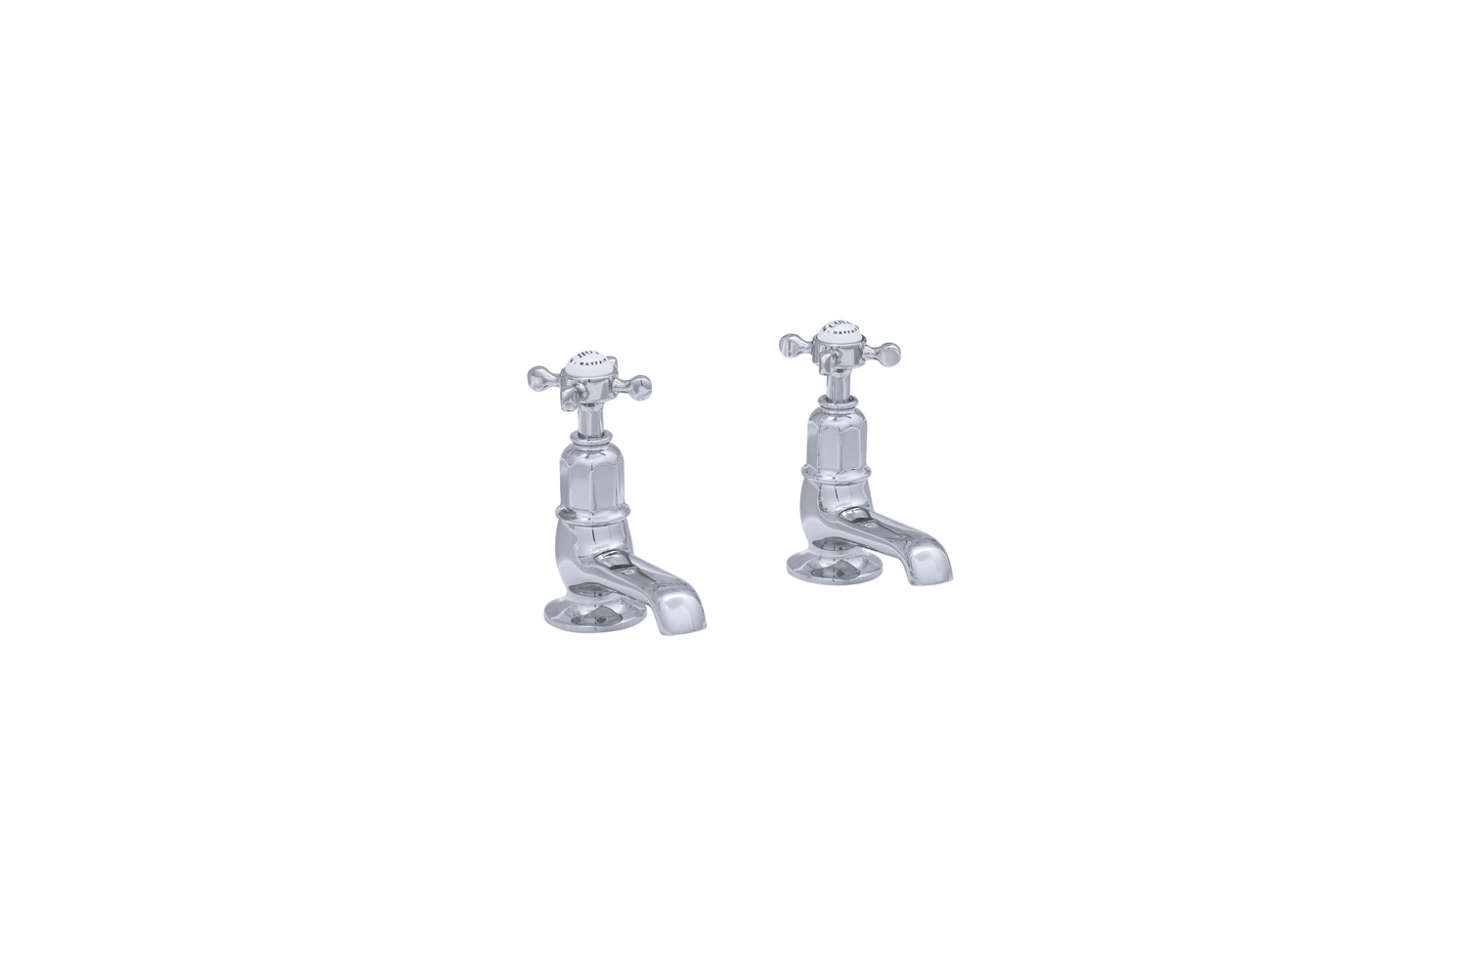 If you have access to a good salvage yard or supplier, pair taps like the Perrin & Rowe Pair of Basin Pillar Taps with Crossheads with a vintage mint green pedestal sink. The taps are available from the English Tapware Co.; contact them for pricing and ordering information.